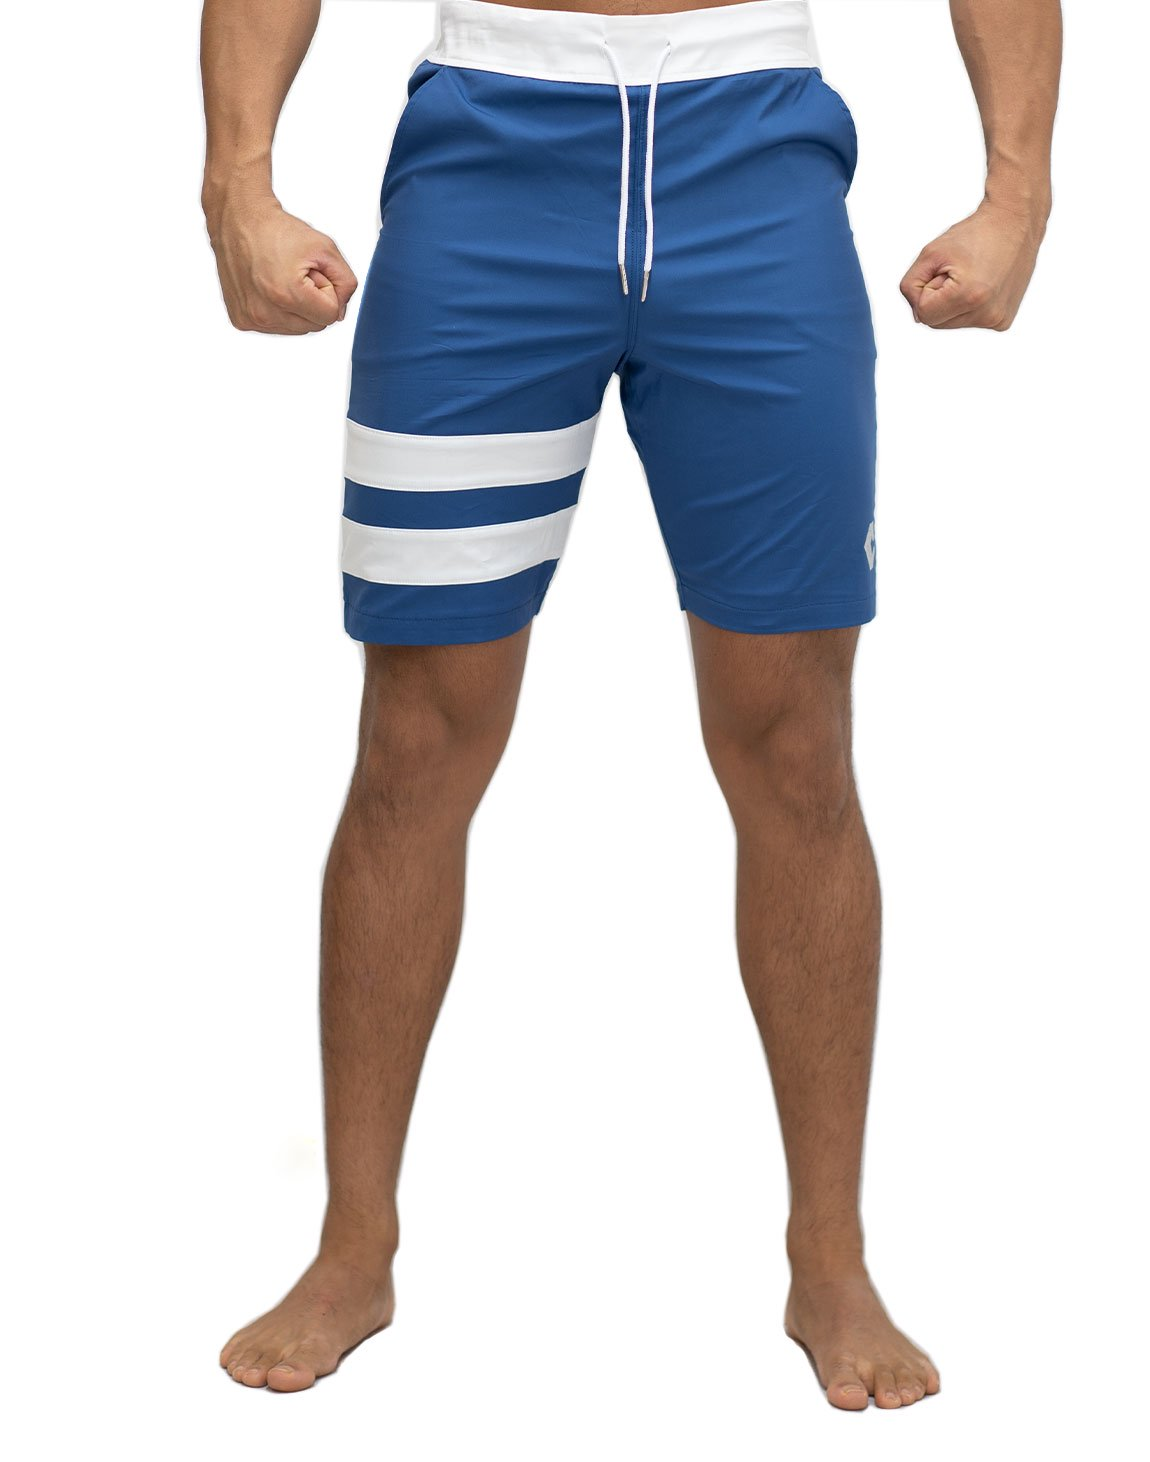 <img class='new_mark_img1' src='https://img.shop-pro.jp/img/new/icons1.gif' style='border:none;display:inline;margin:0px;padding:0px;width:auto;' />CRONOS TIGHT BOARD SHORTS NAVY